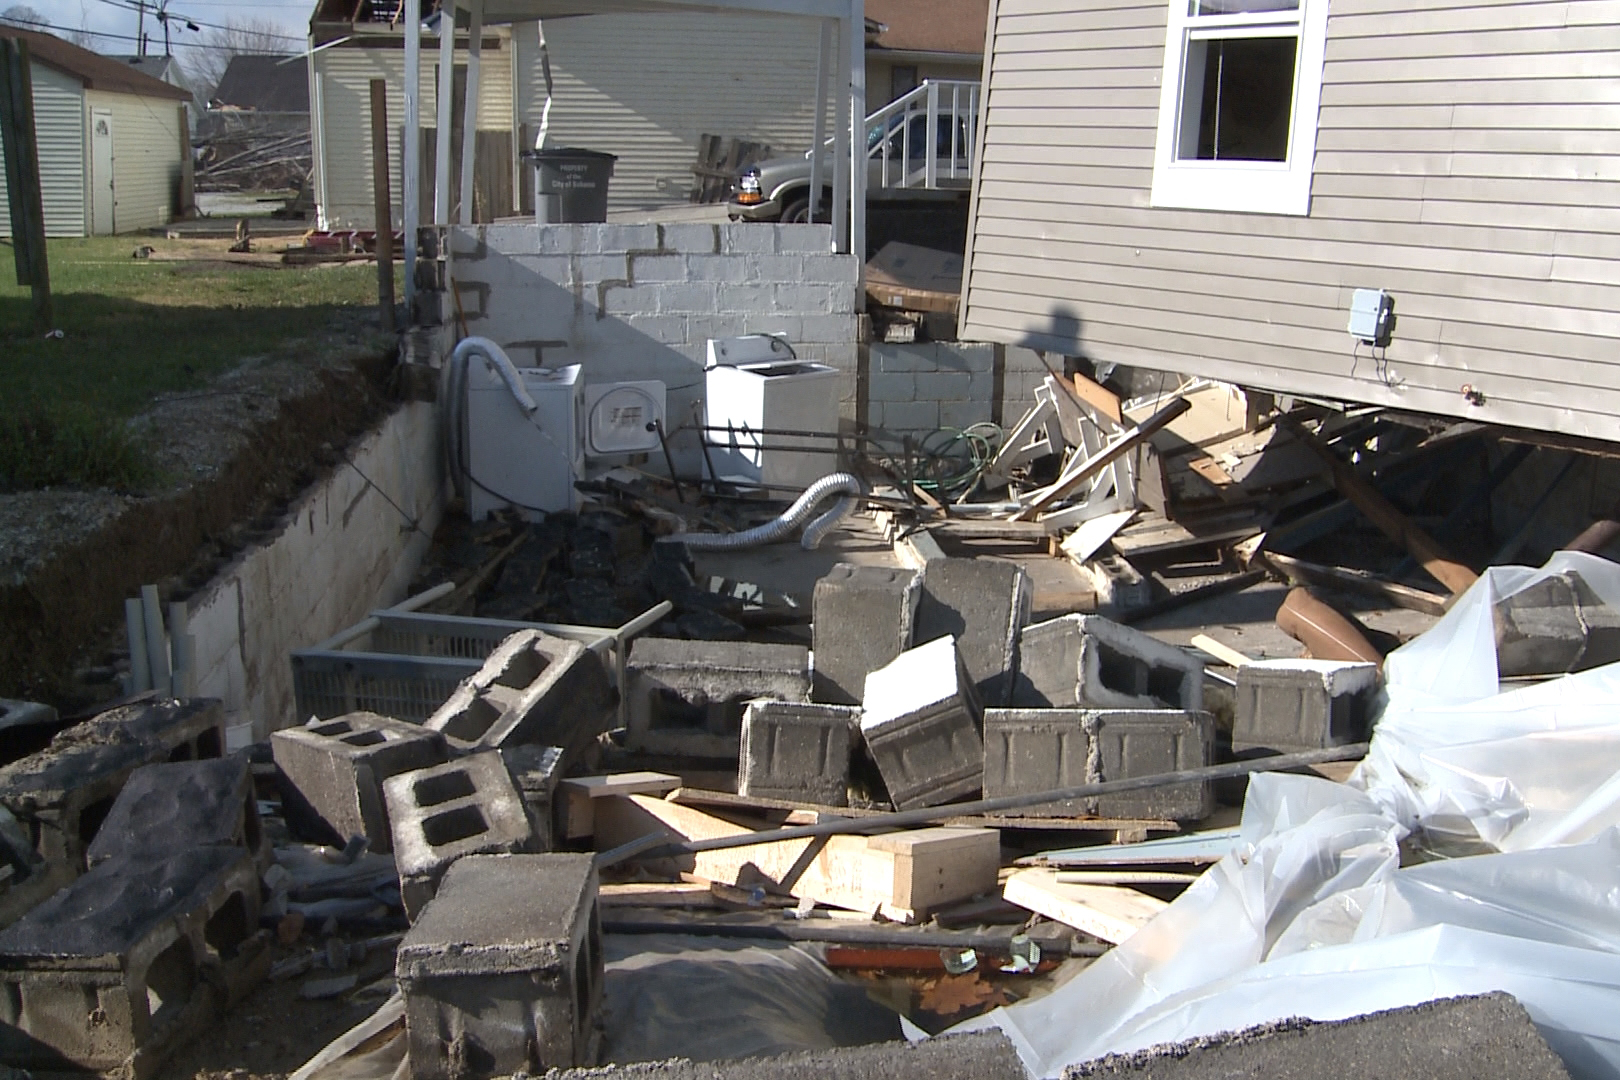 The tornado ripped Larrick and Glenna's house off its foundation